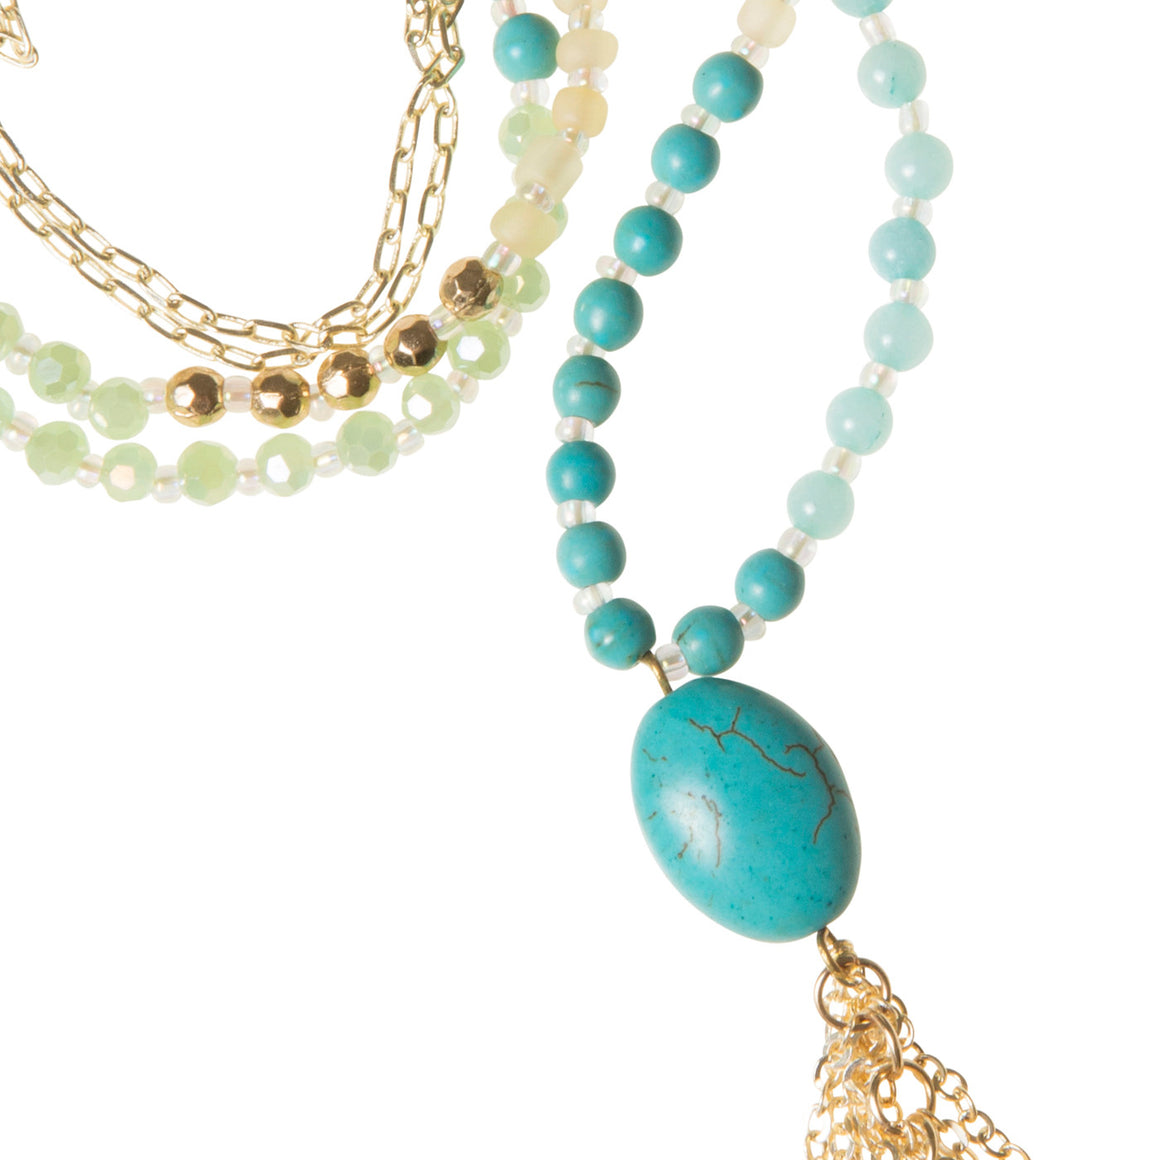 Daily Mala Necklace : turquoise/gold